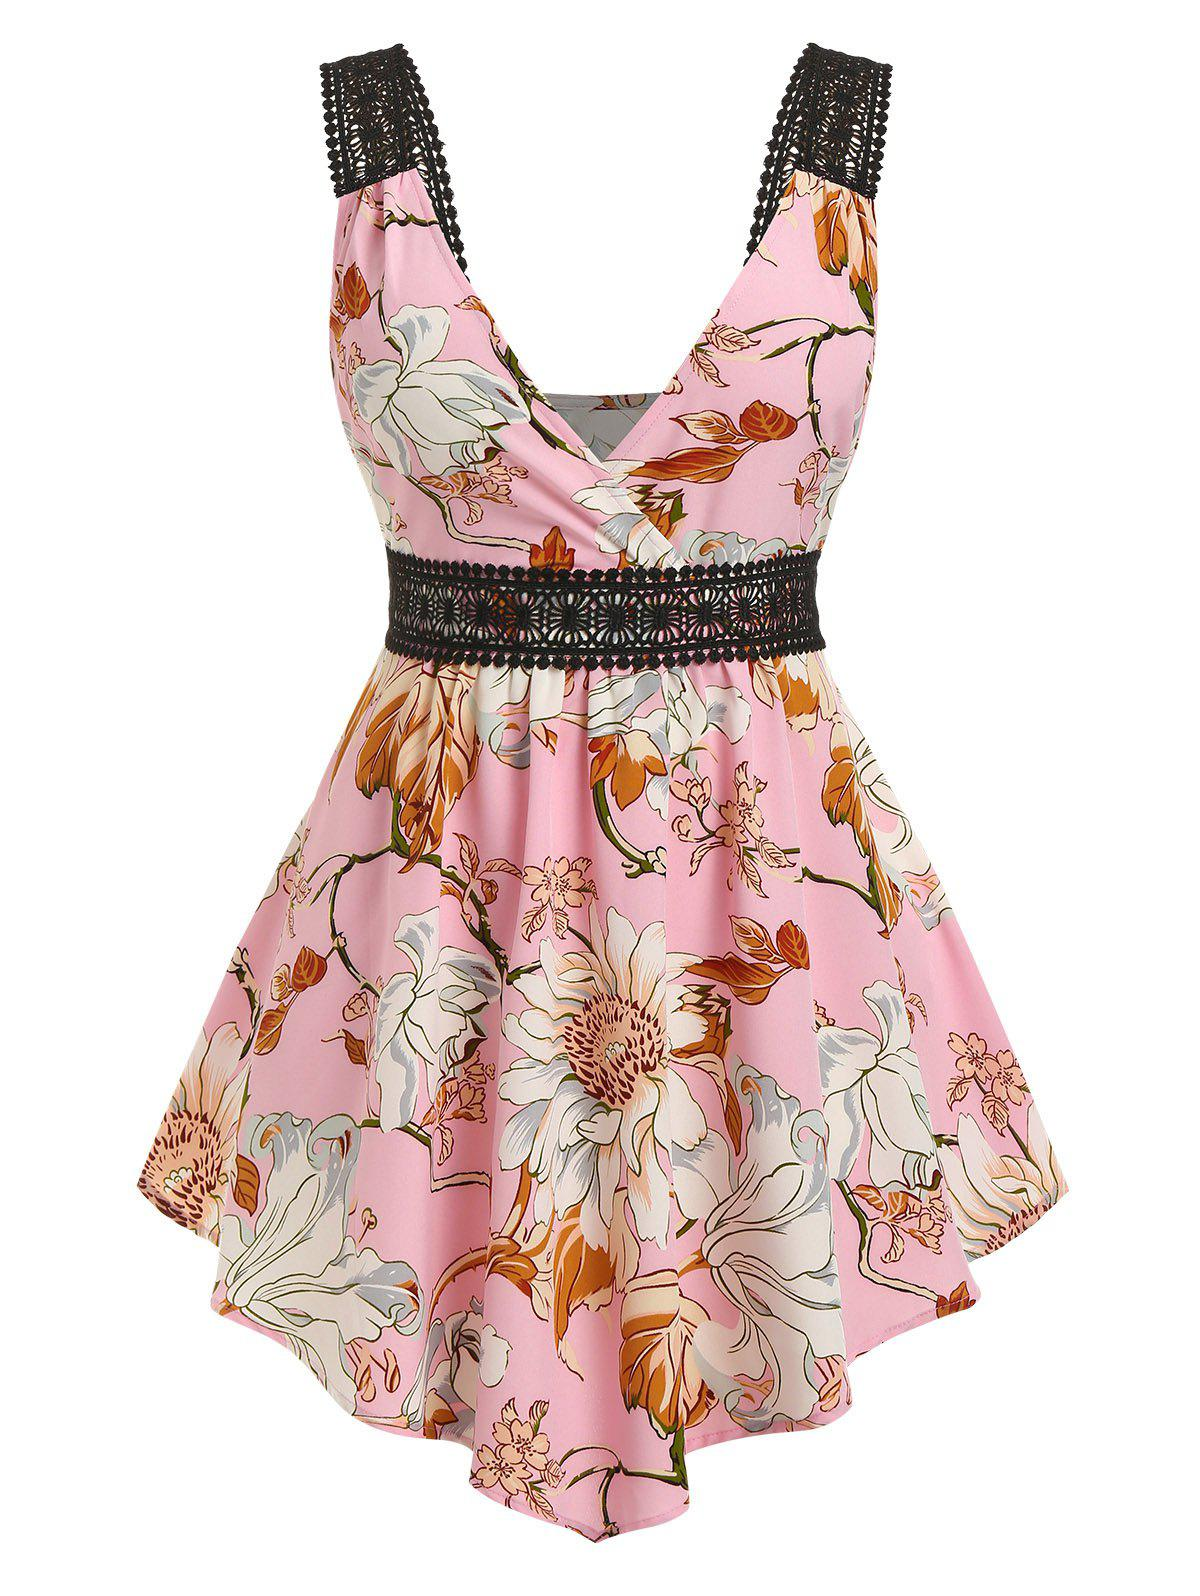 Plus Size Flower Guipure Lace Insert Backless Tank Top - PINK 5X